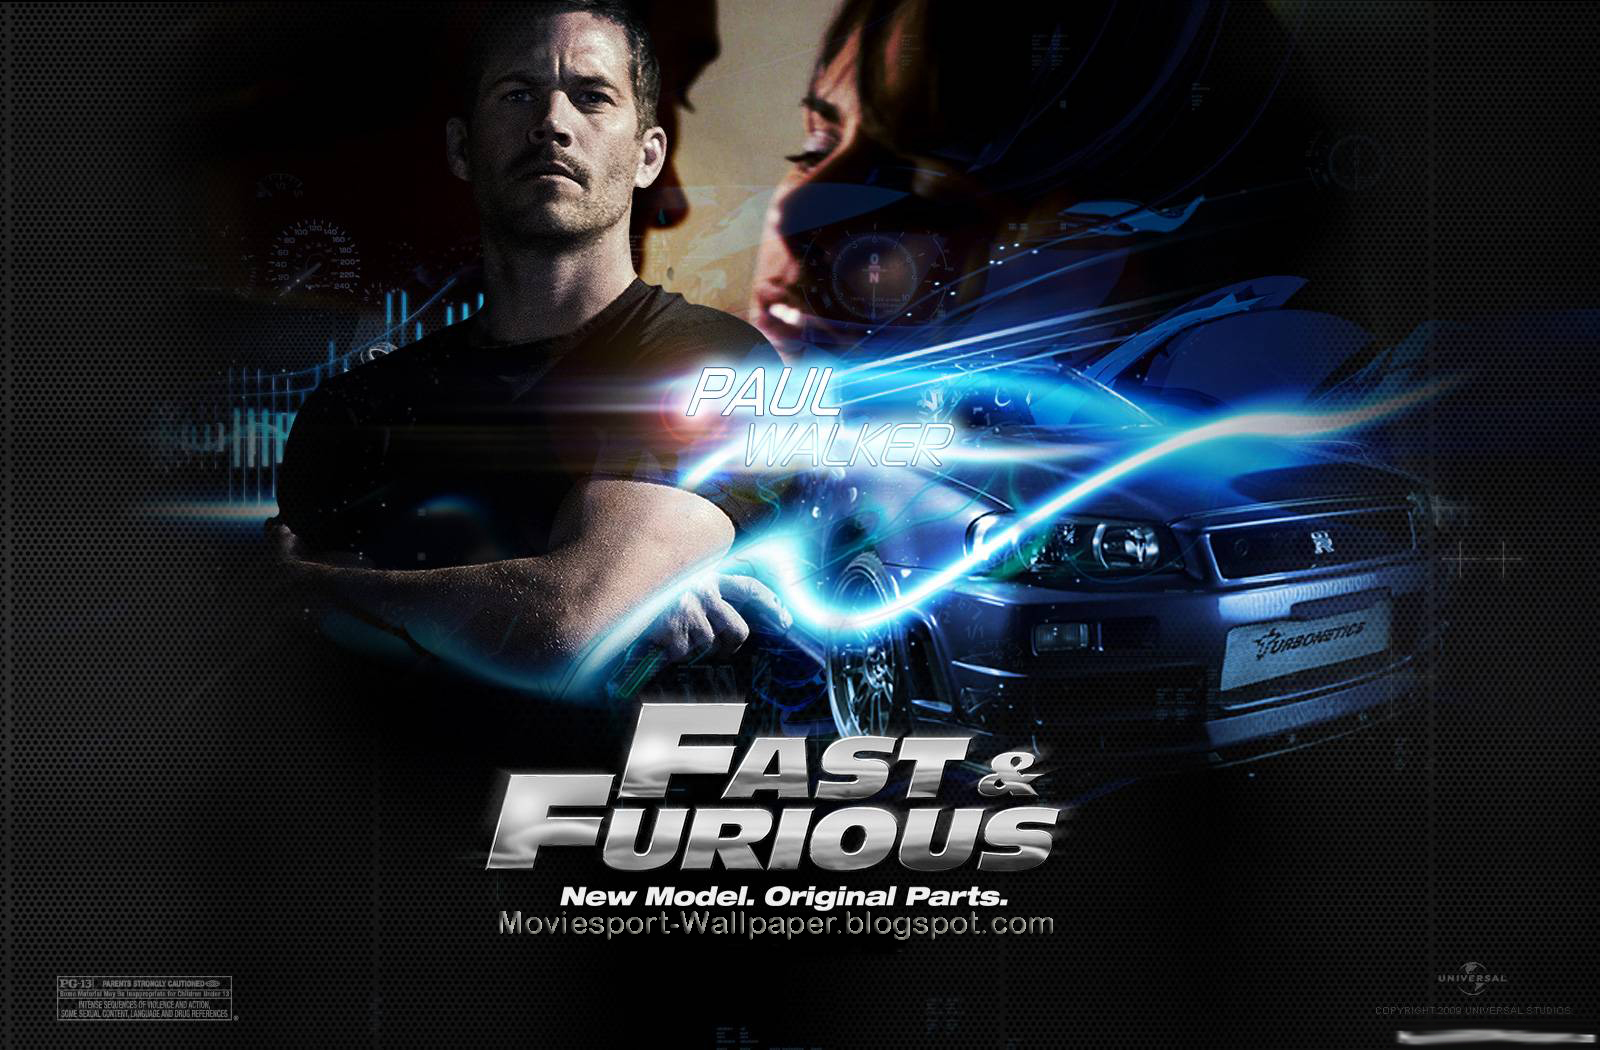 Fast Furious 6 Paul Walker Wallpaper 344812 Hd Wallpaper